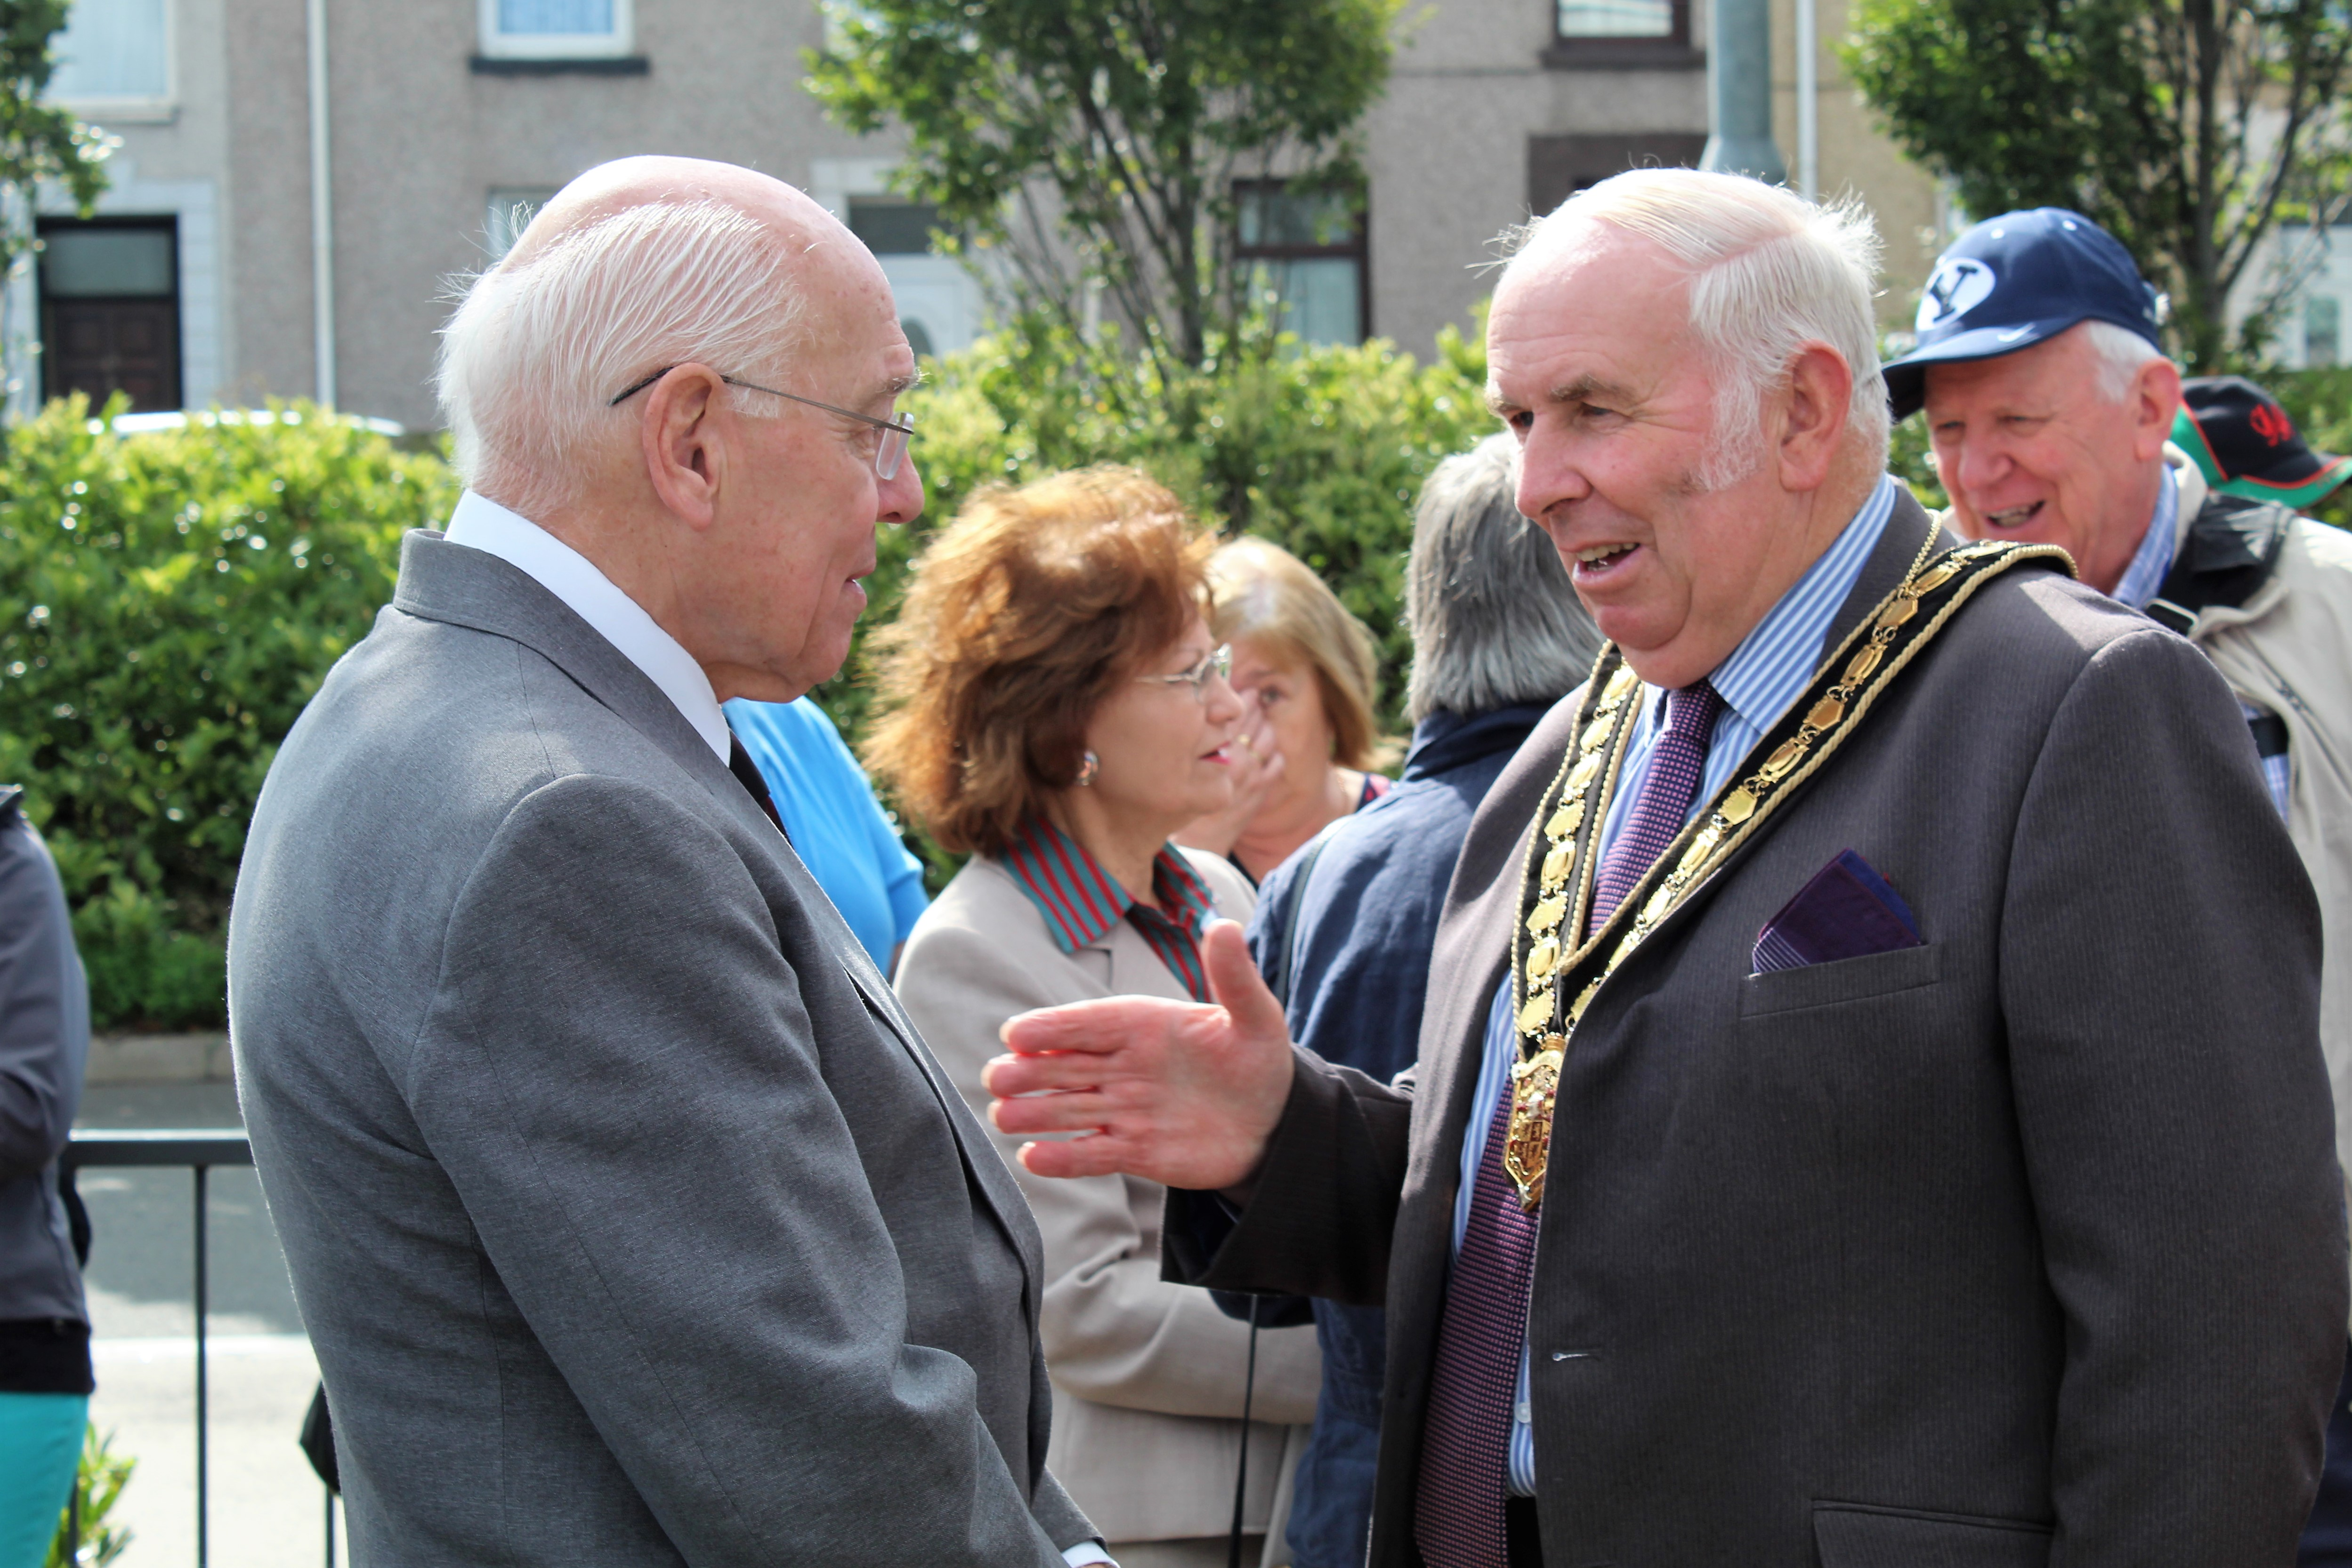 Dr. Ronald Dennis (left) speaks with the Chair of the Carmathenshire County Council, Councilor Mansel Charles, Plaid Cymru of Llanegwad, following the Island Place Meeting House plaque unveiling on Aug. 25, in Llanelli, Wales.